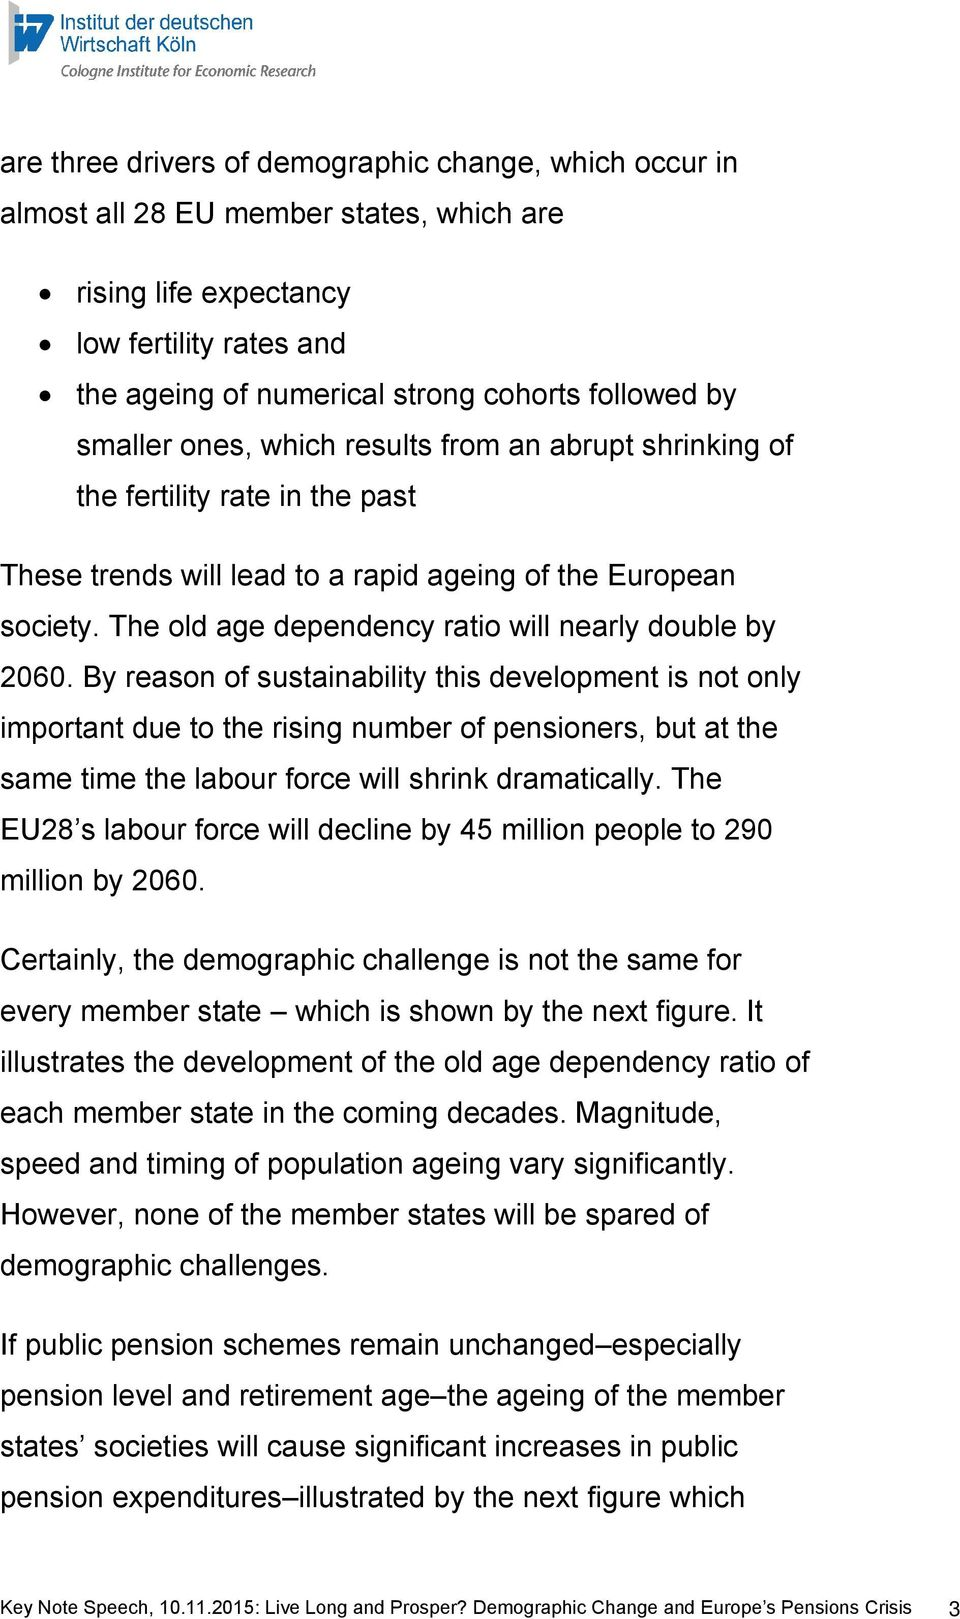 The old age dependency ratio will nearly double by 2060.